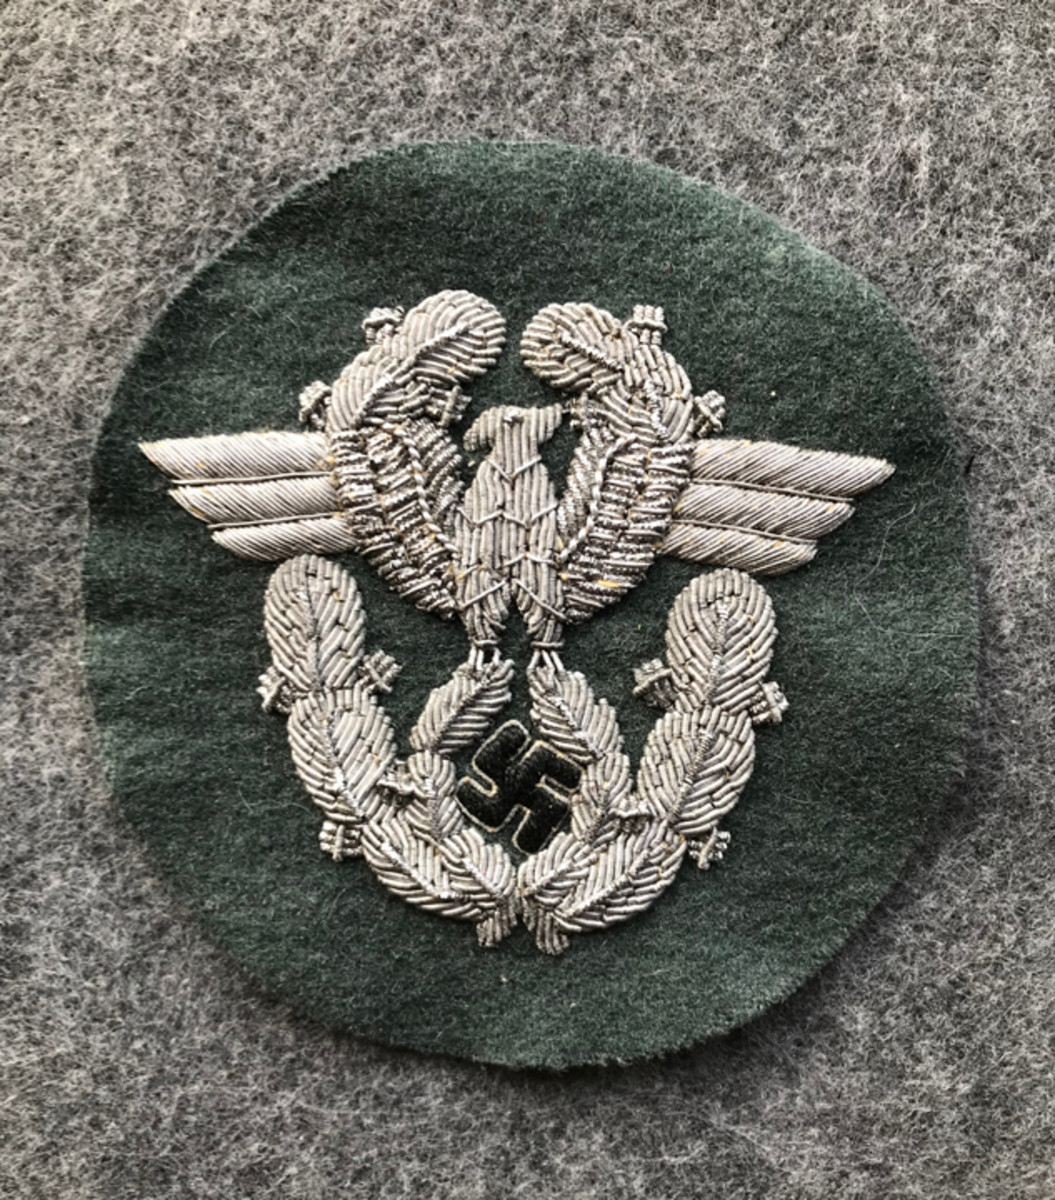 A German Officer Police sleeve eagle. This type of police patch is constructed with the national eagle hand embroidered with twisted and flat silver bullion wires and black swastika on police green wool cloth. This type of German WWII police patch retails for around $160-$200.